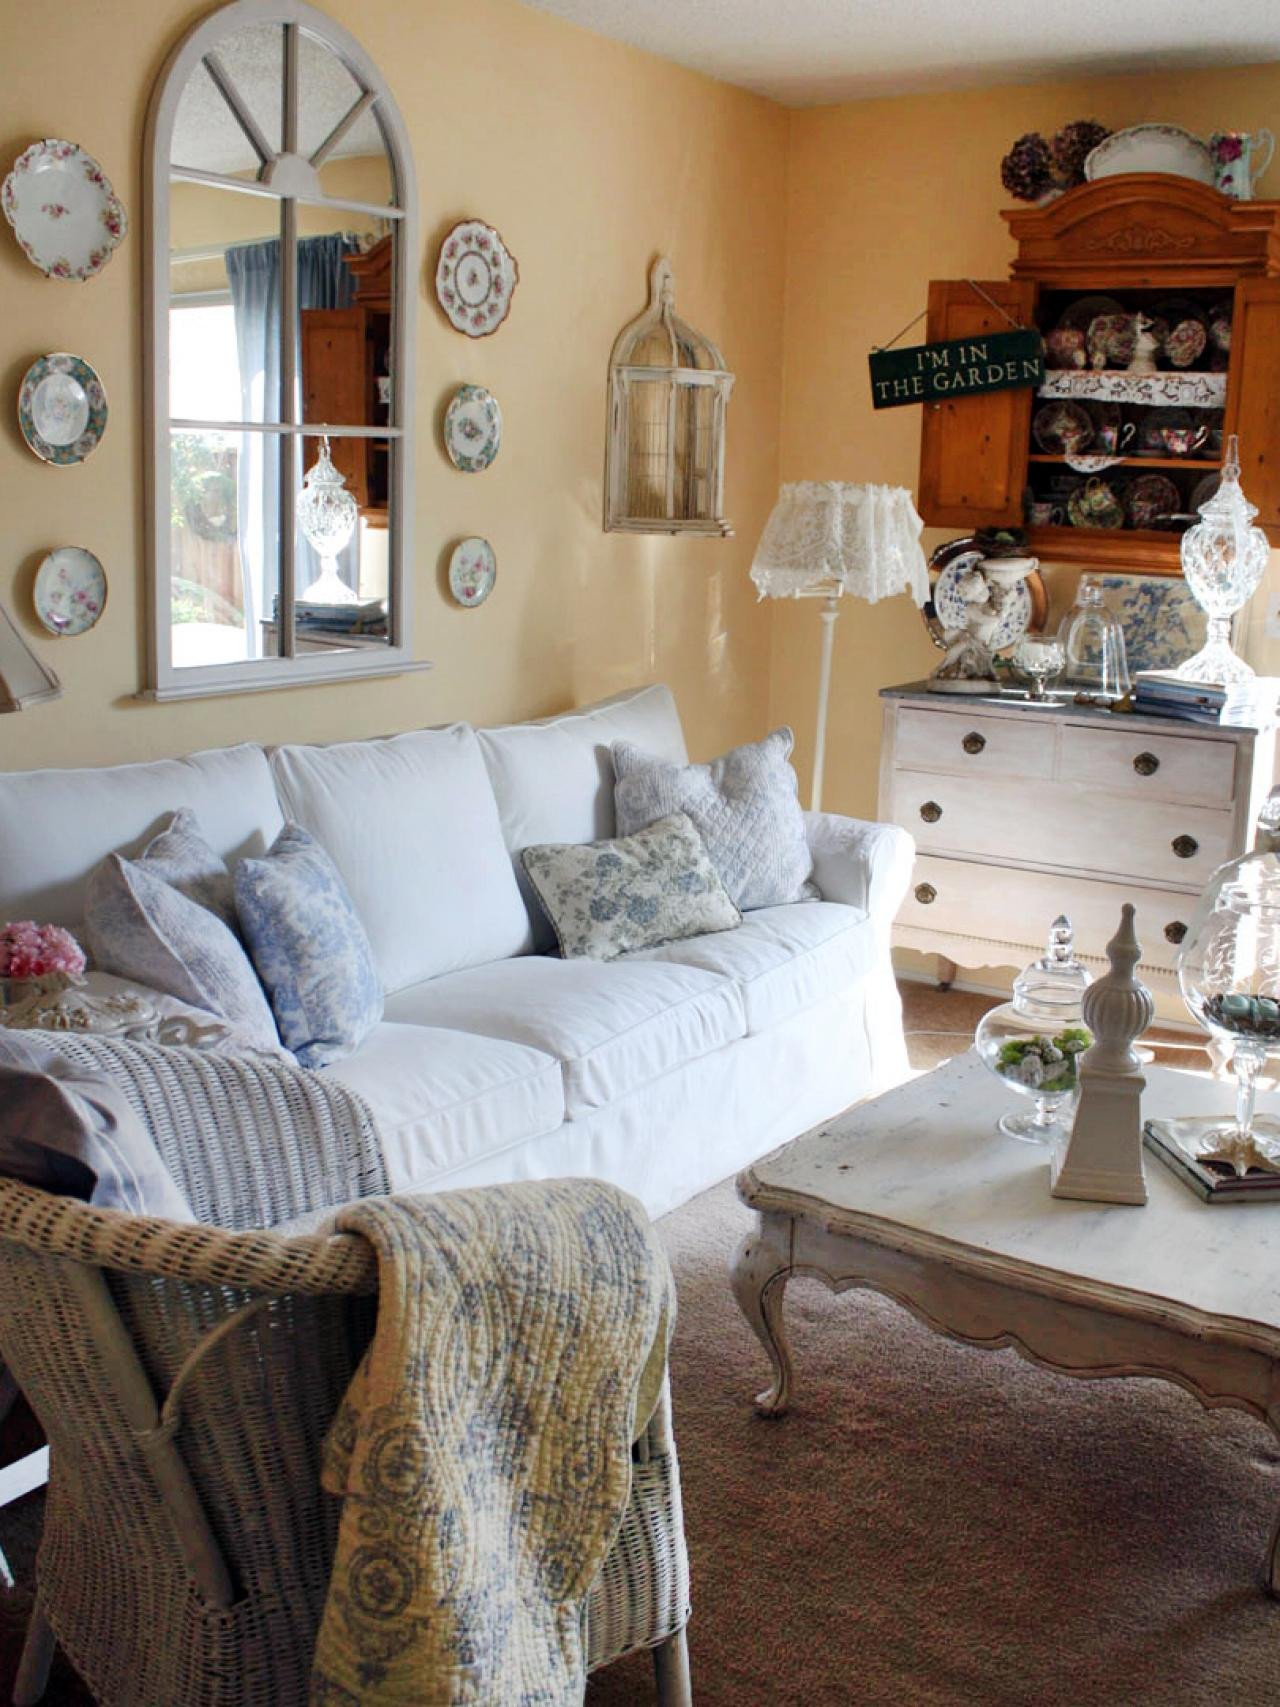 Cottage Living Room Ideas Lovely 25 Shabby Chic Style Living Room Design Ideas Decoration Love